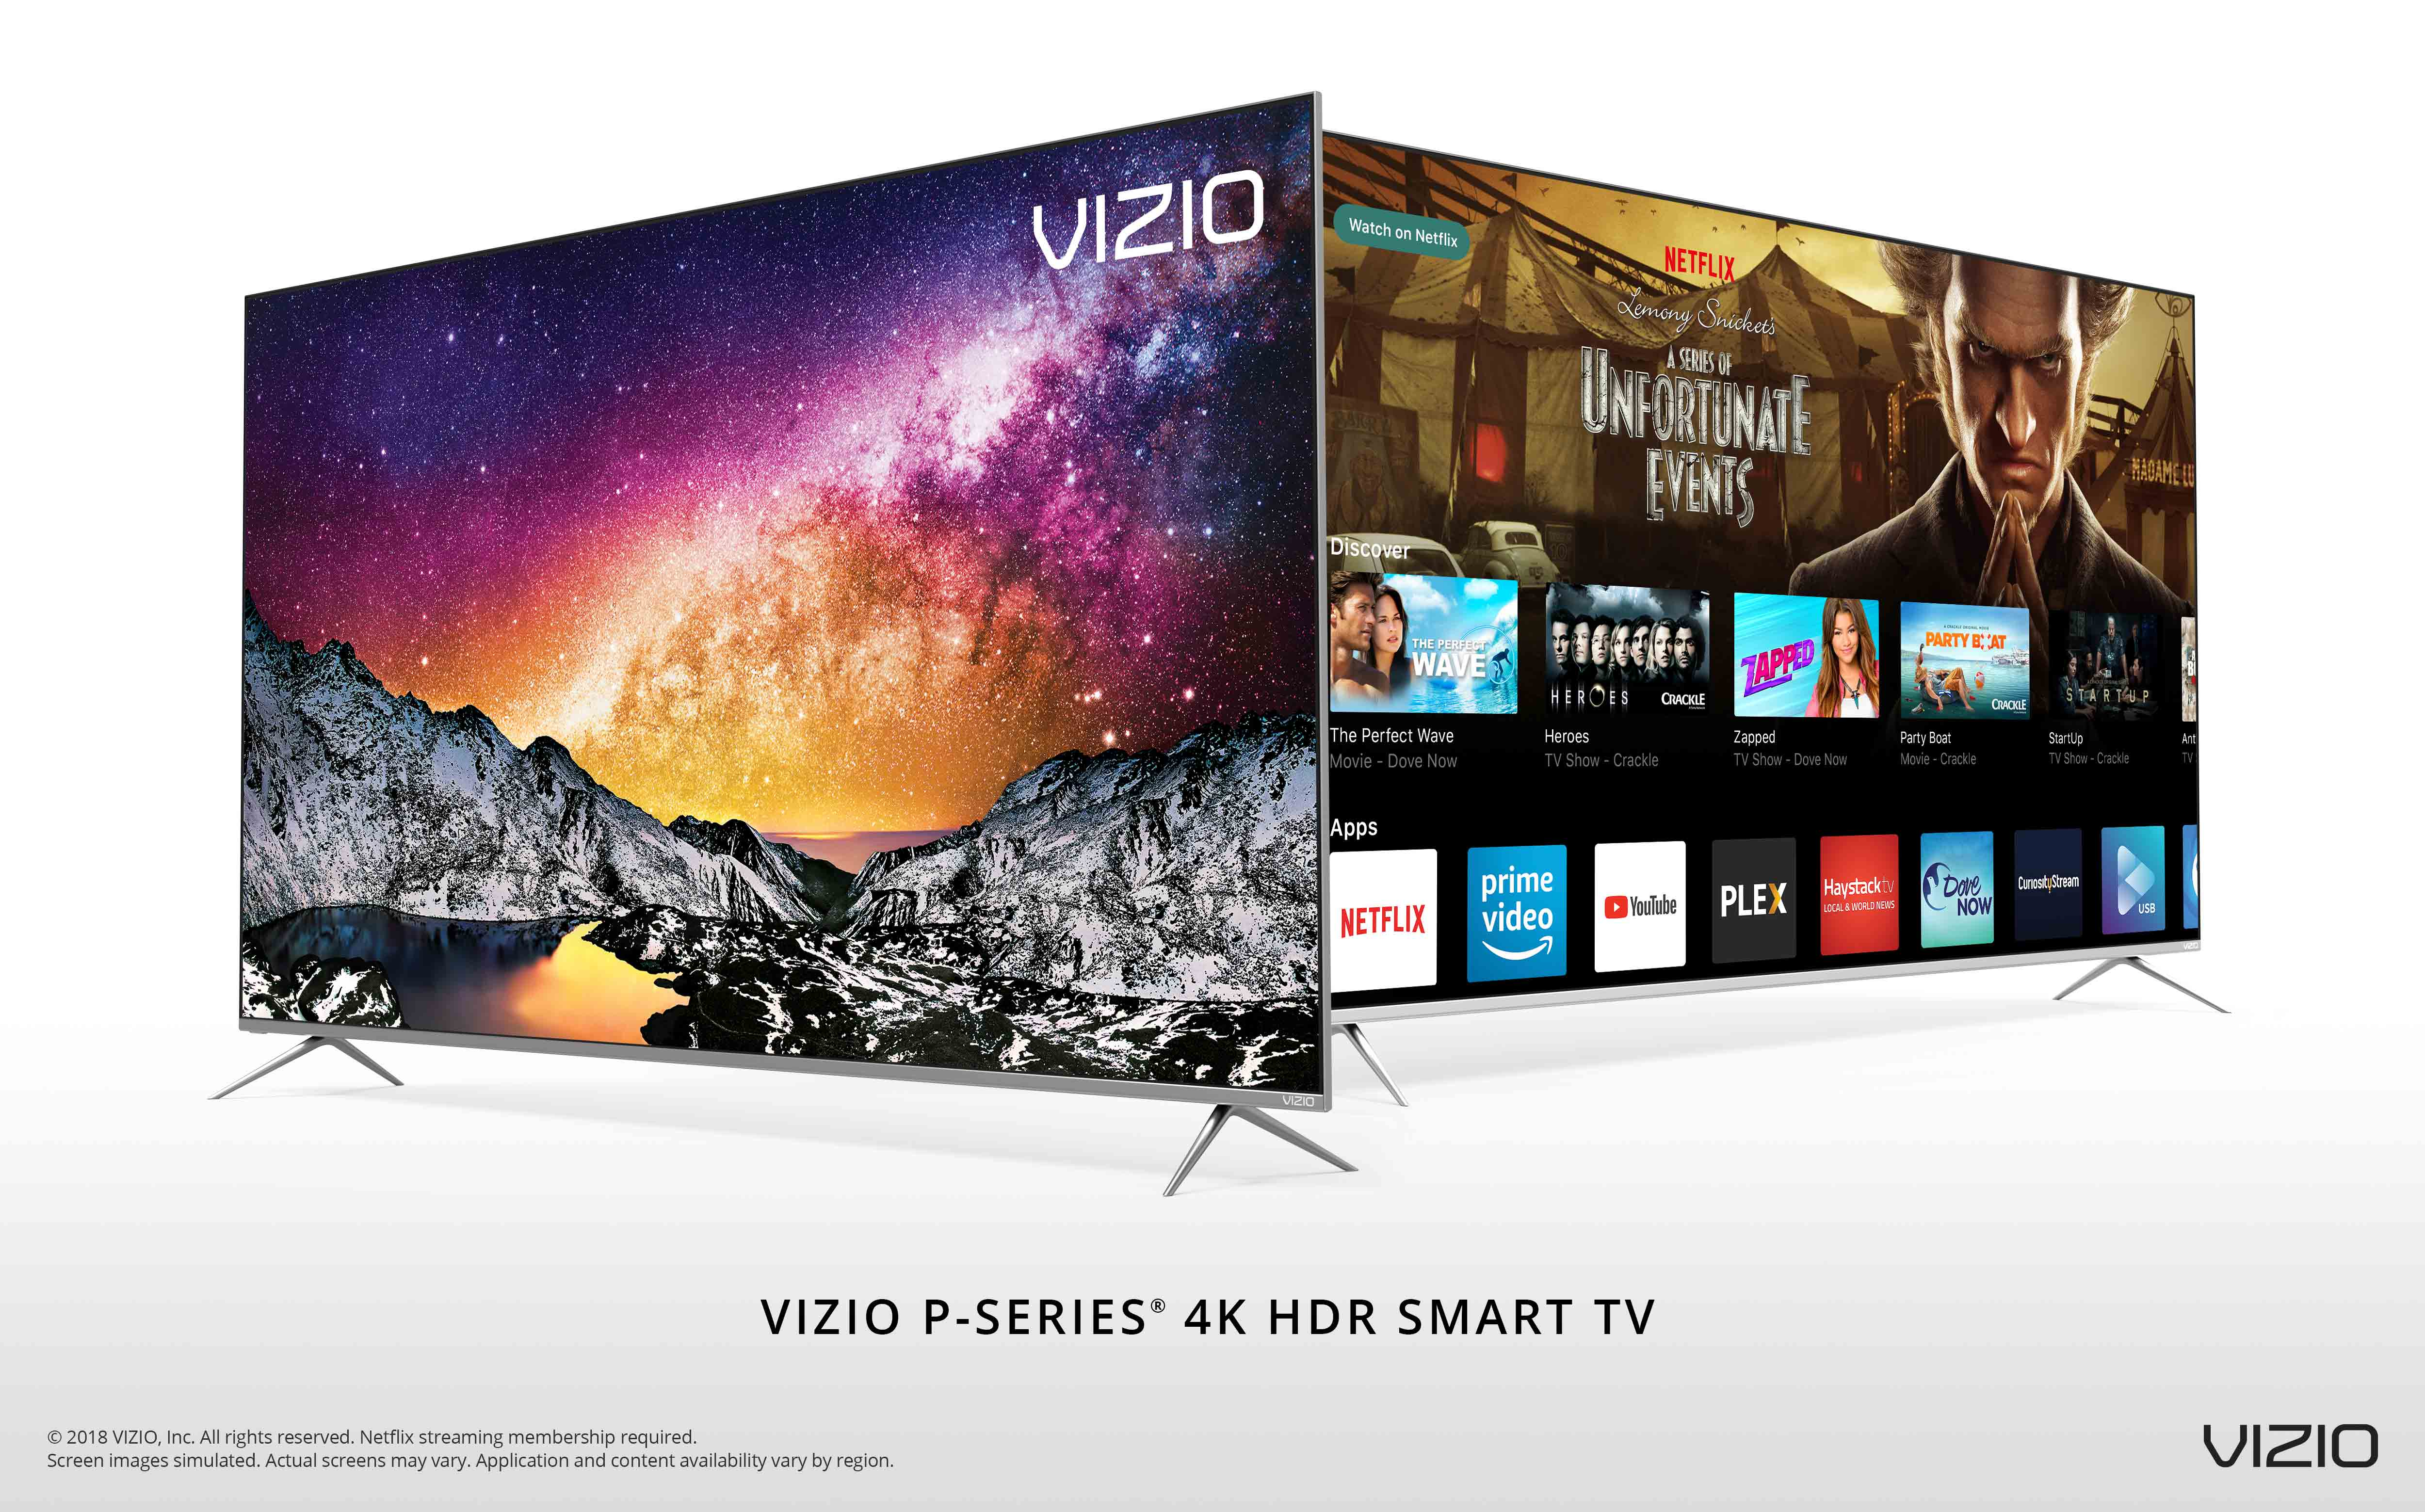 Tv At Costco Canada Vizio Announces Availability Of Its All New 2018 P Series 4k Hdr